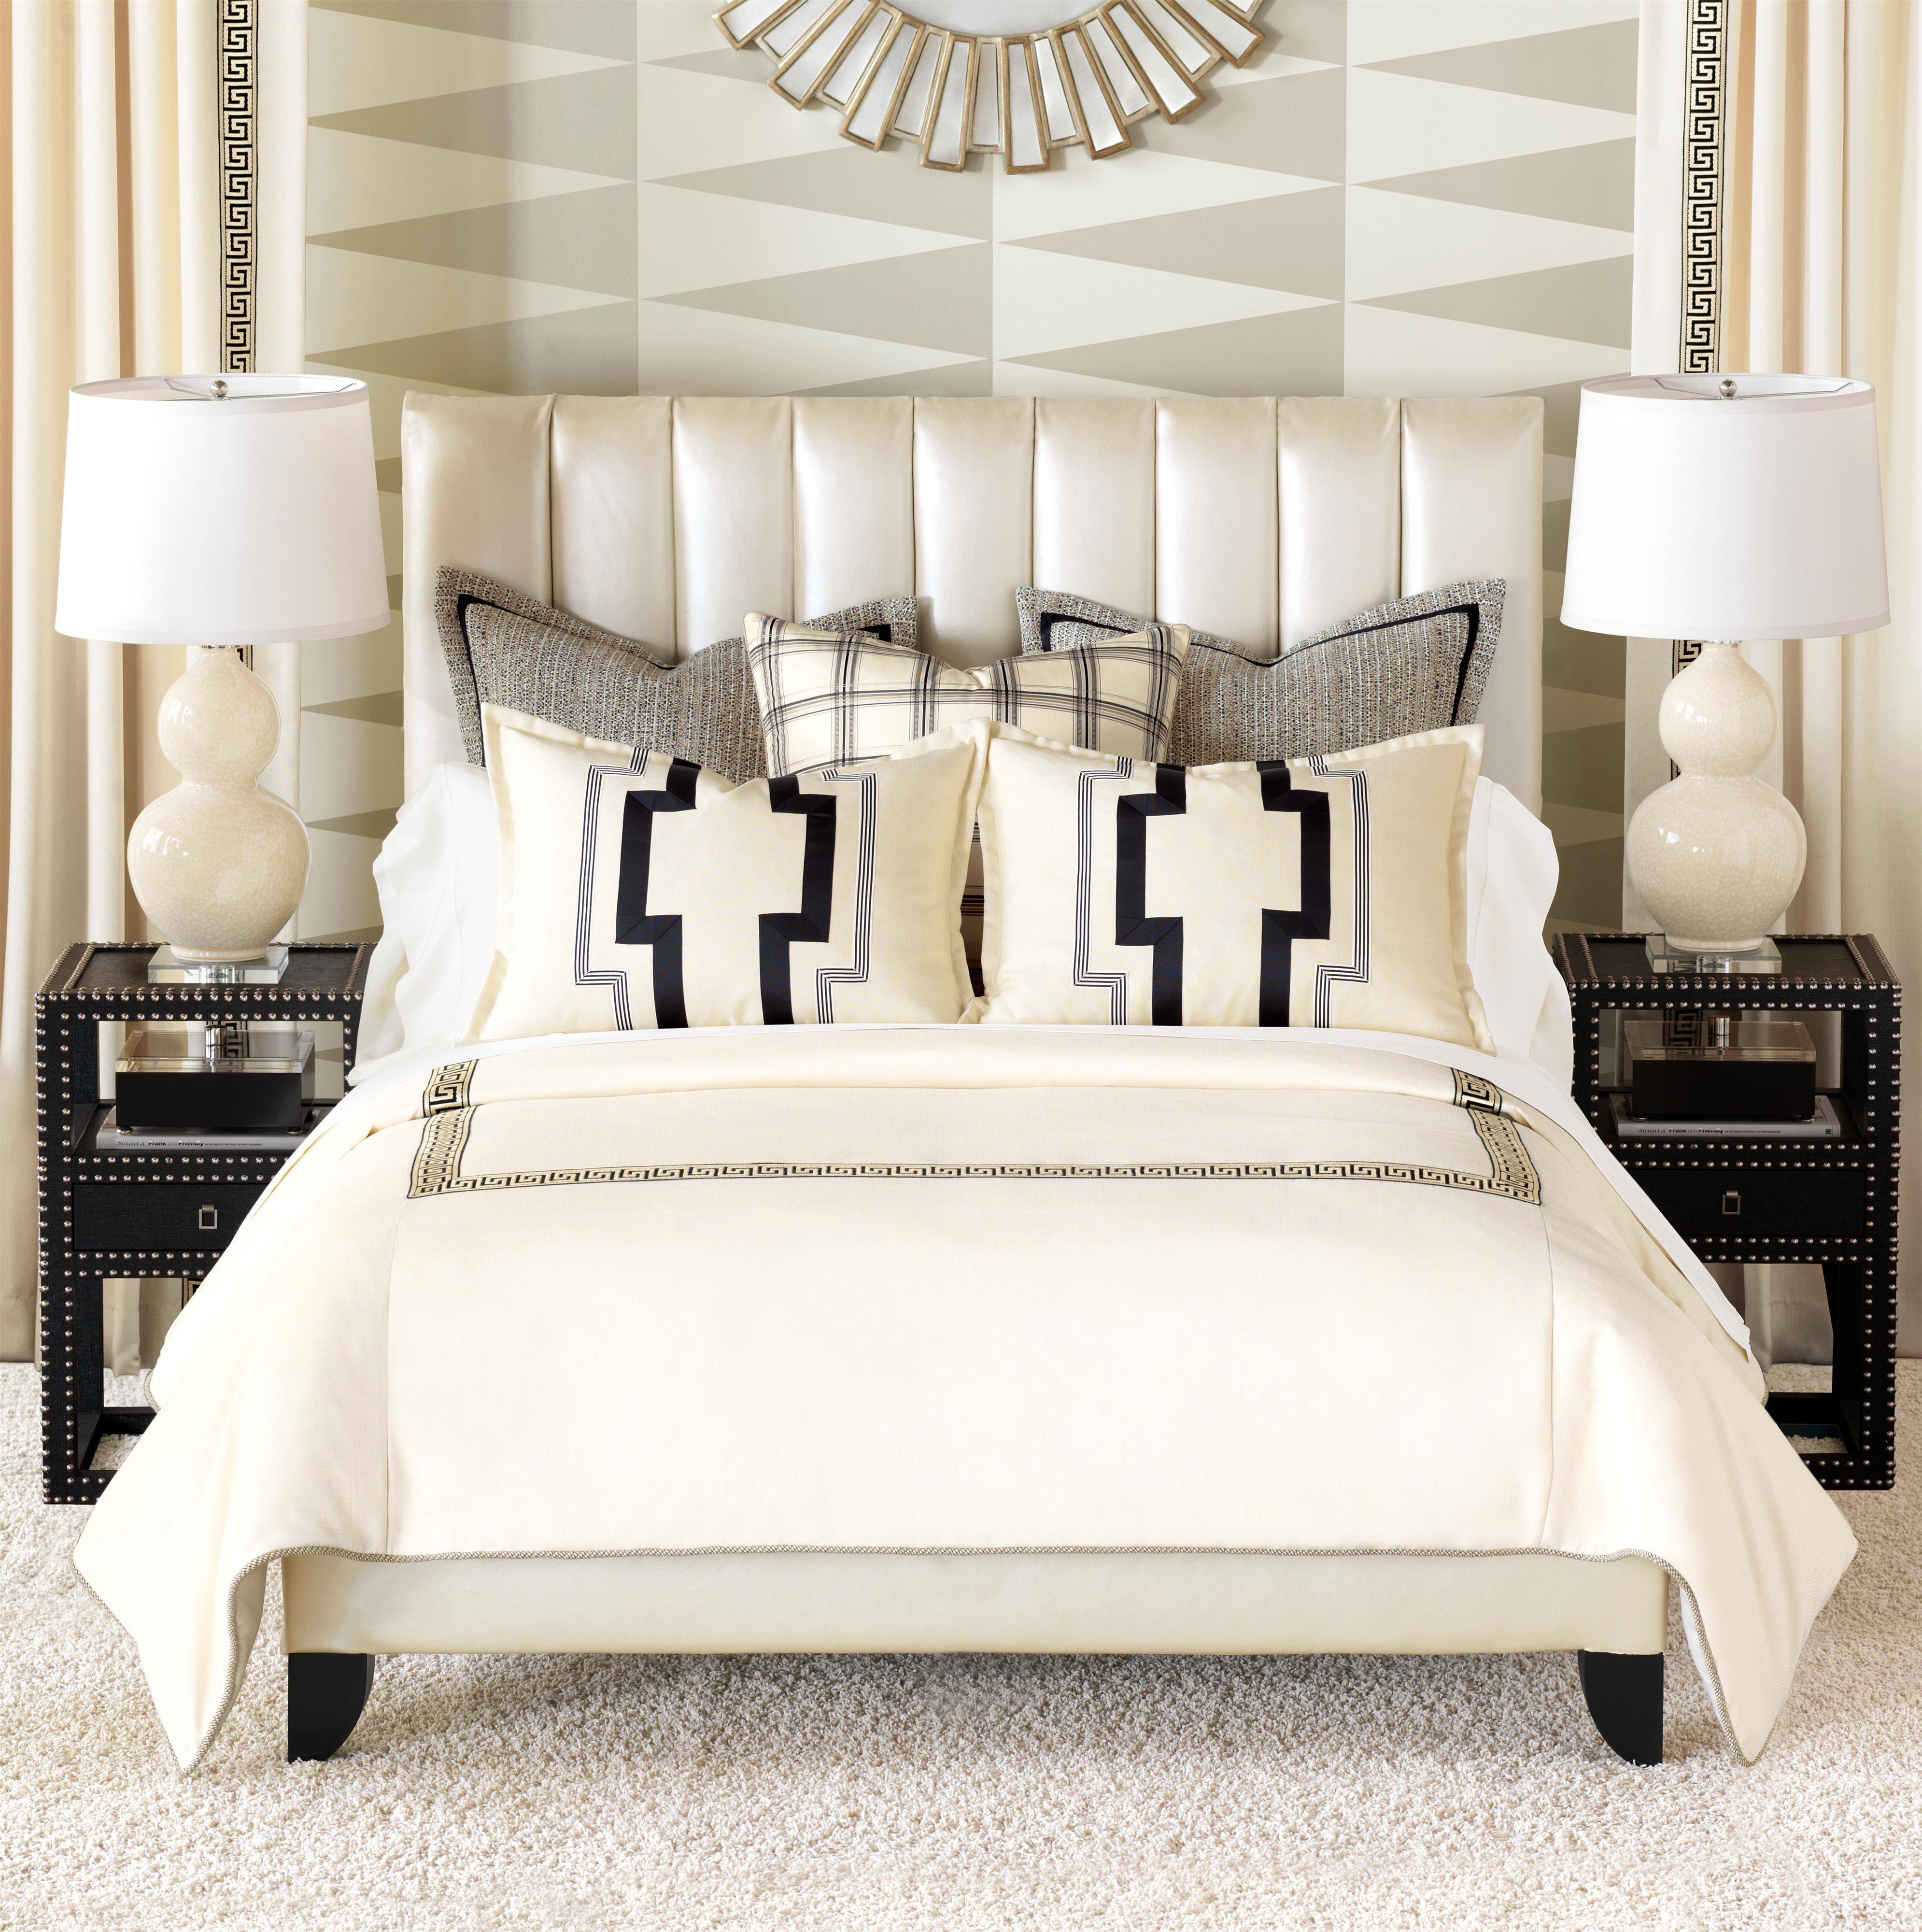 Abernathy Cal King Hand-Tacked Comforter by Eastern Accents at Alison Craig Home Furnishings